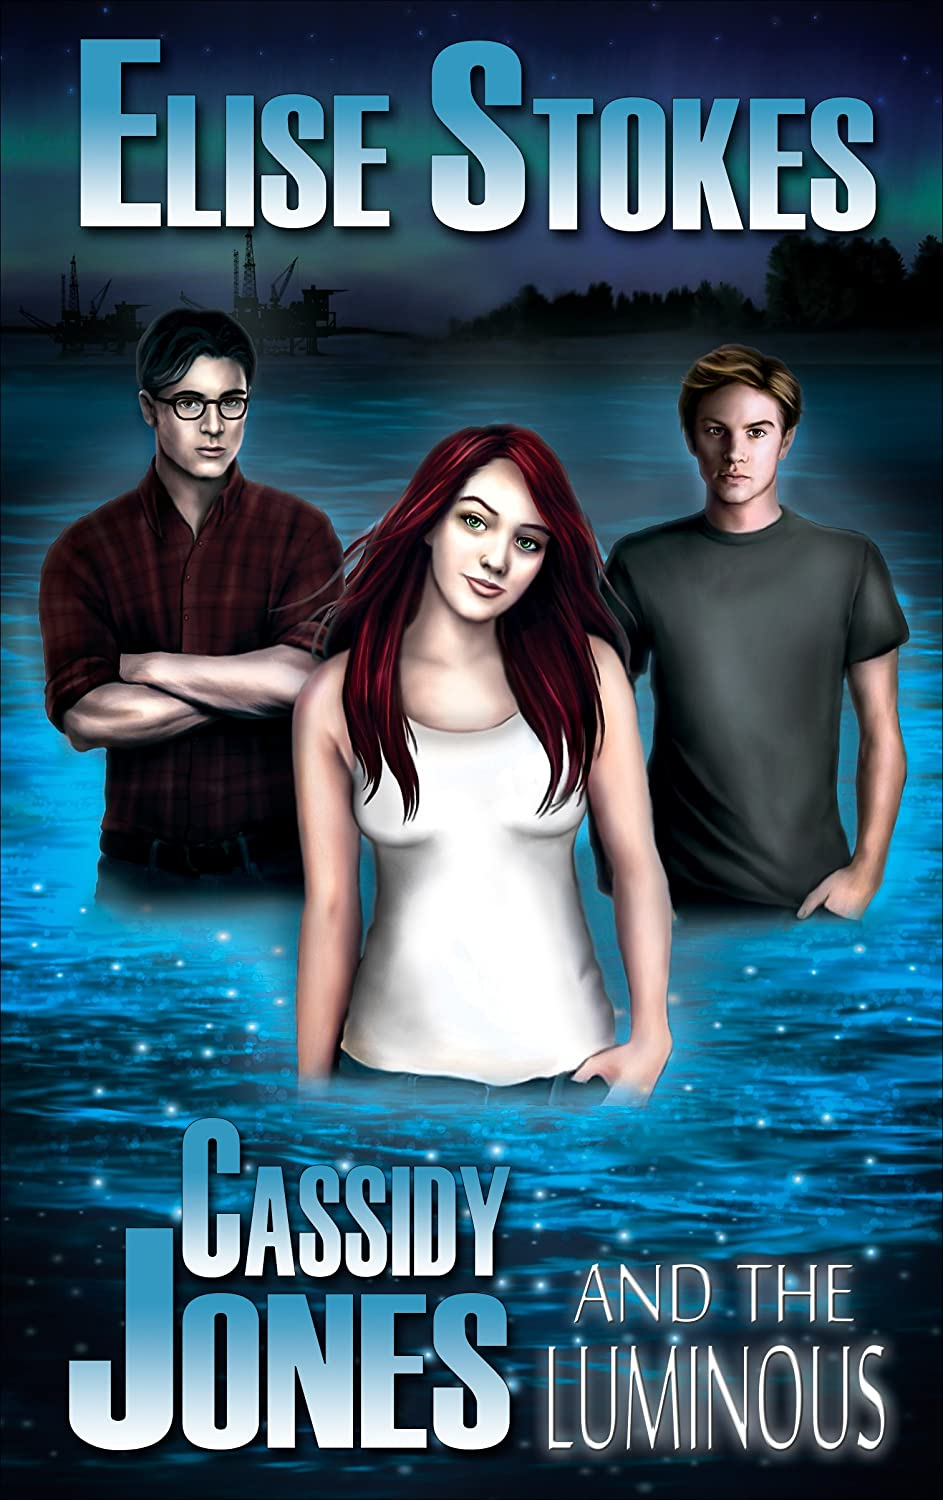 Cassidy Jones and the Seventh Attendant cover